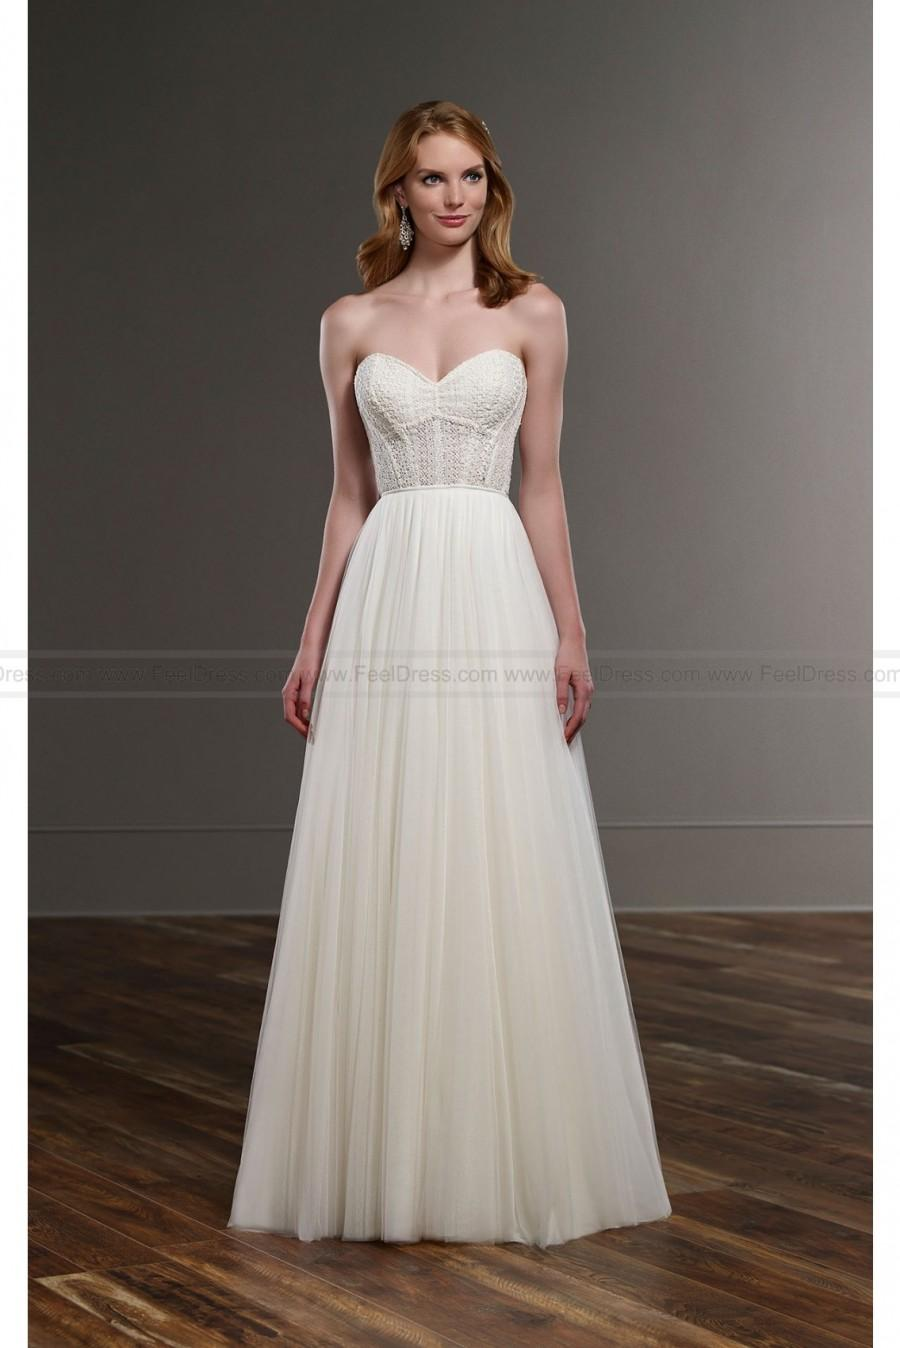 Mariage - Martina Liana Breezy Bridal Gown Separates Style CATE SCOUT